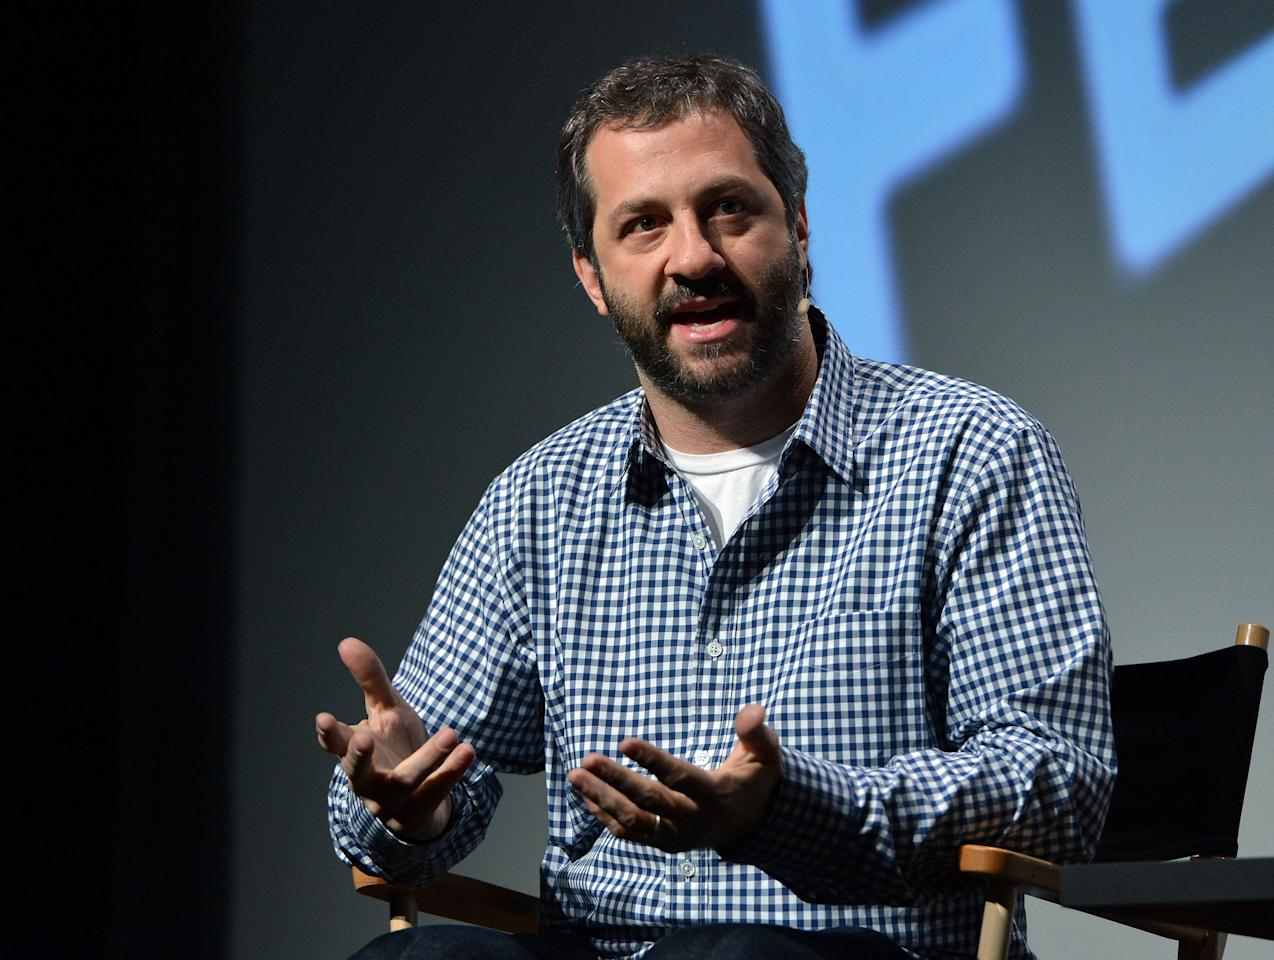 NEW YORK, NY - APRIL 19:  Filmmaker Judd Apatow speaks during the Tribeca Talks Director's Series: 100 Years of Universal during the 2012 Tribeca Film Festival at the Borough of Manhattan Community College on April 19, 2012 in New York City.  (Photo by Slaven Vlasic/Getty Images)